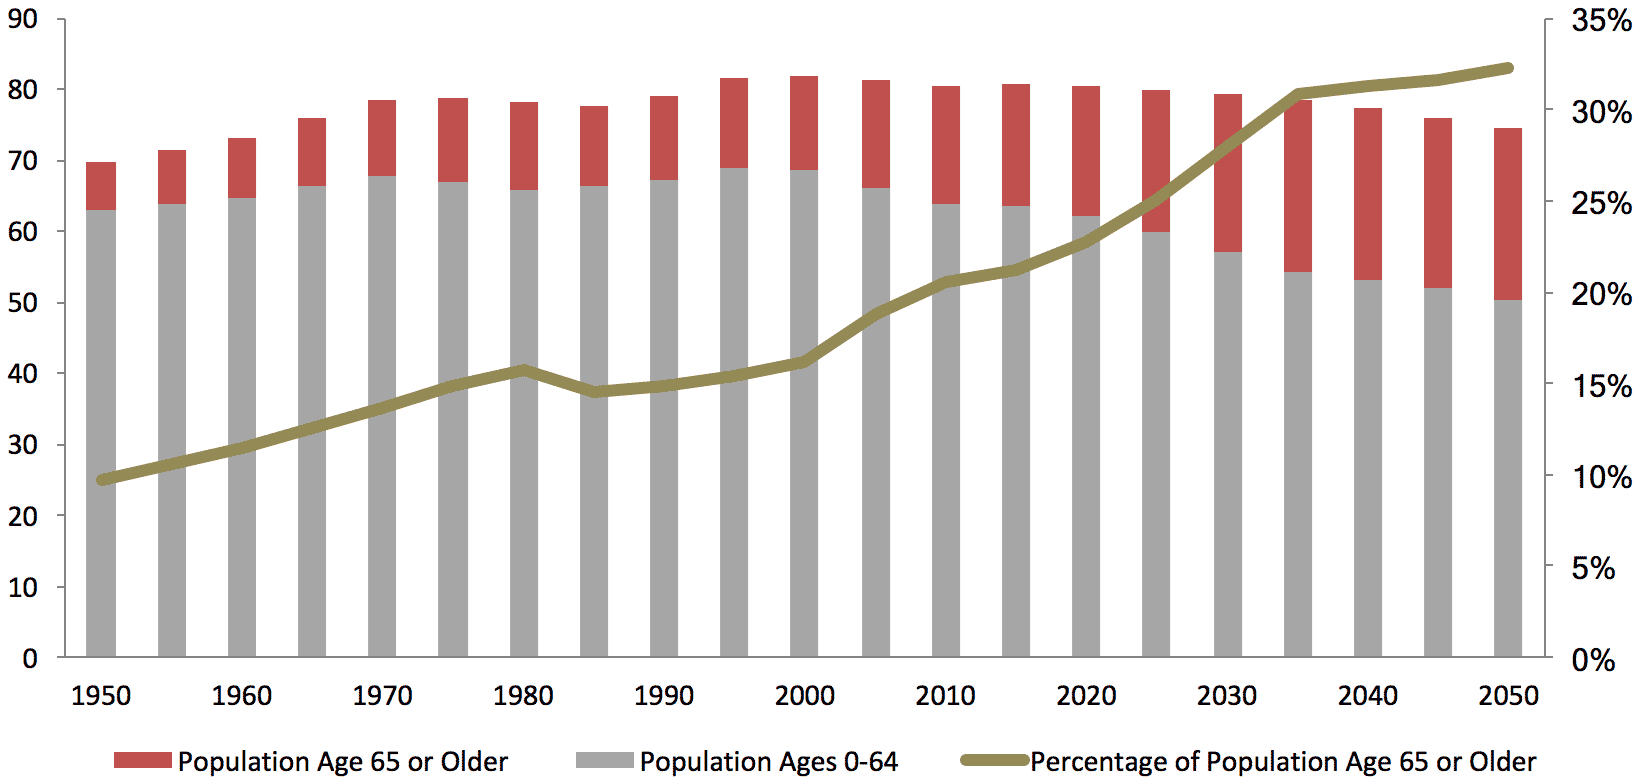 germany-population-by-age-group